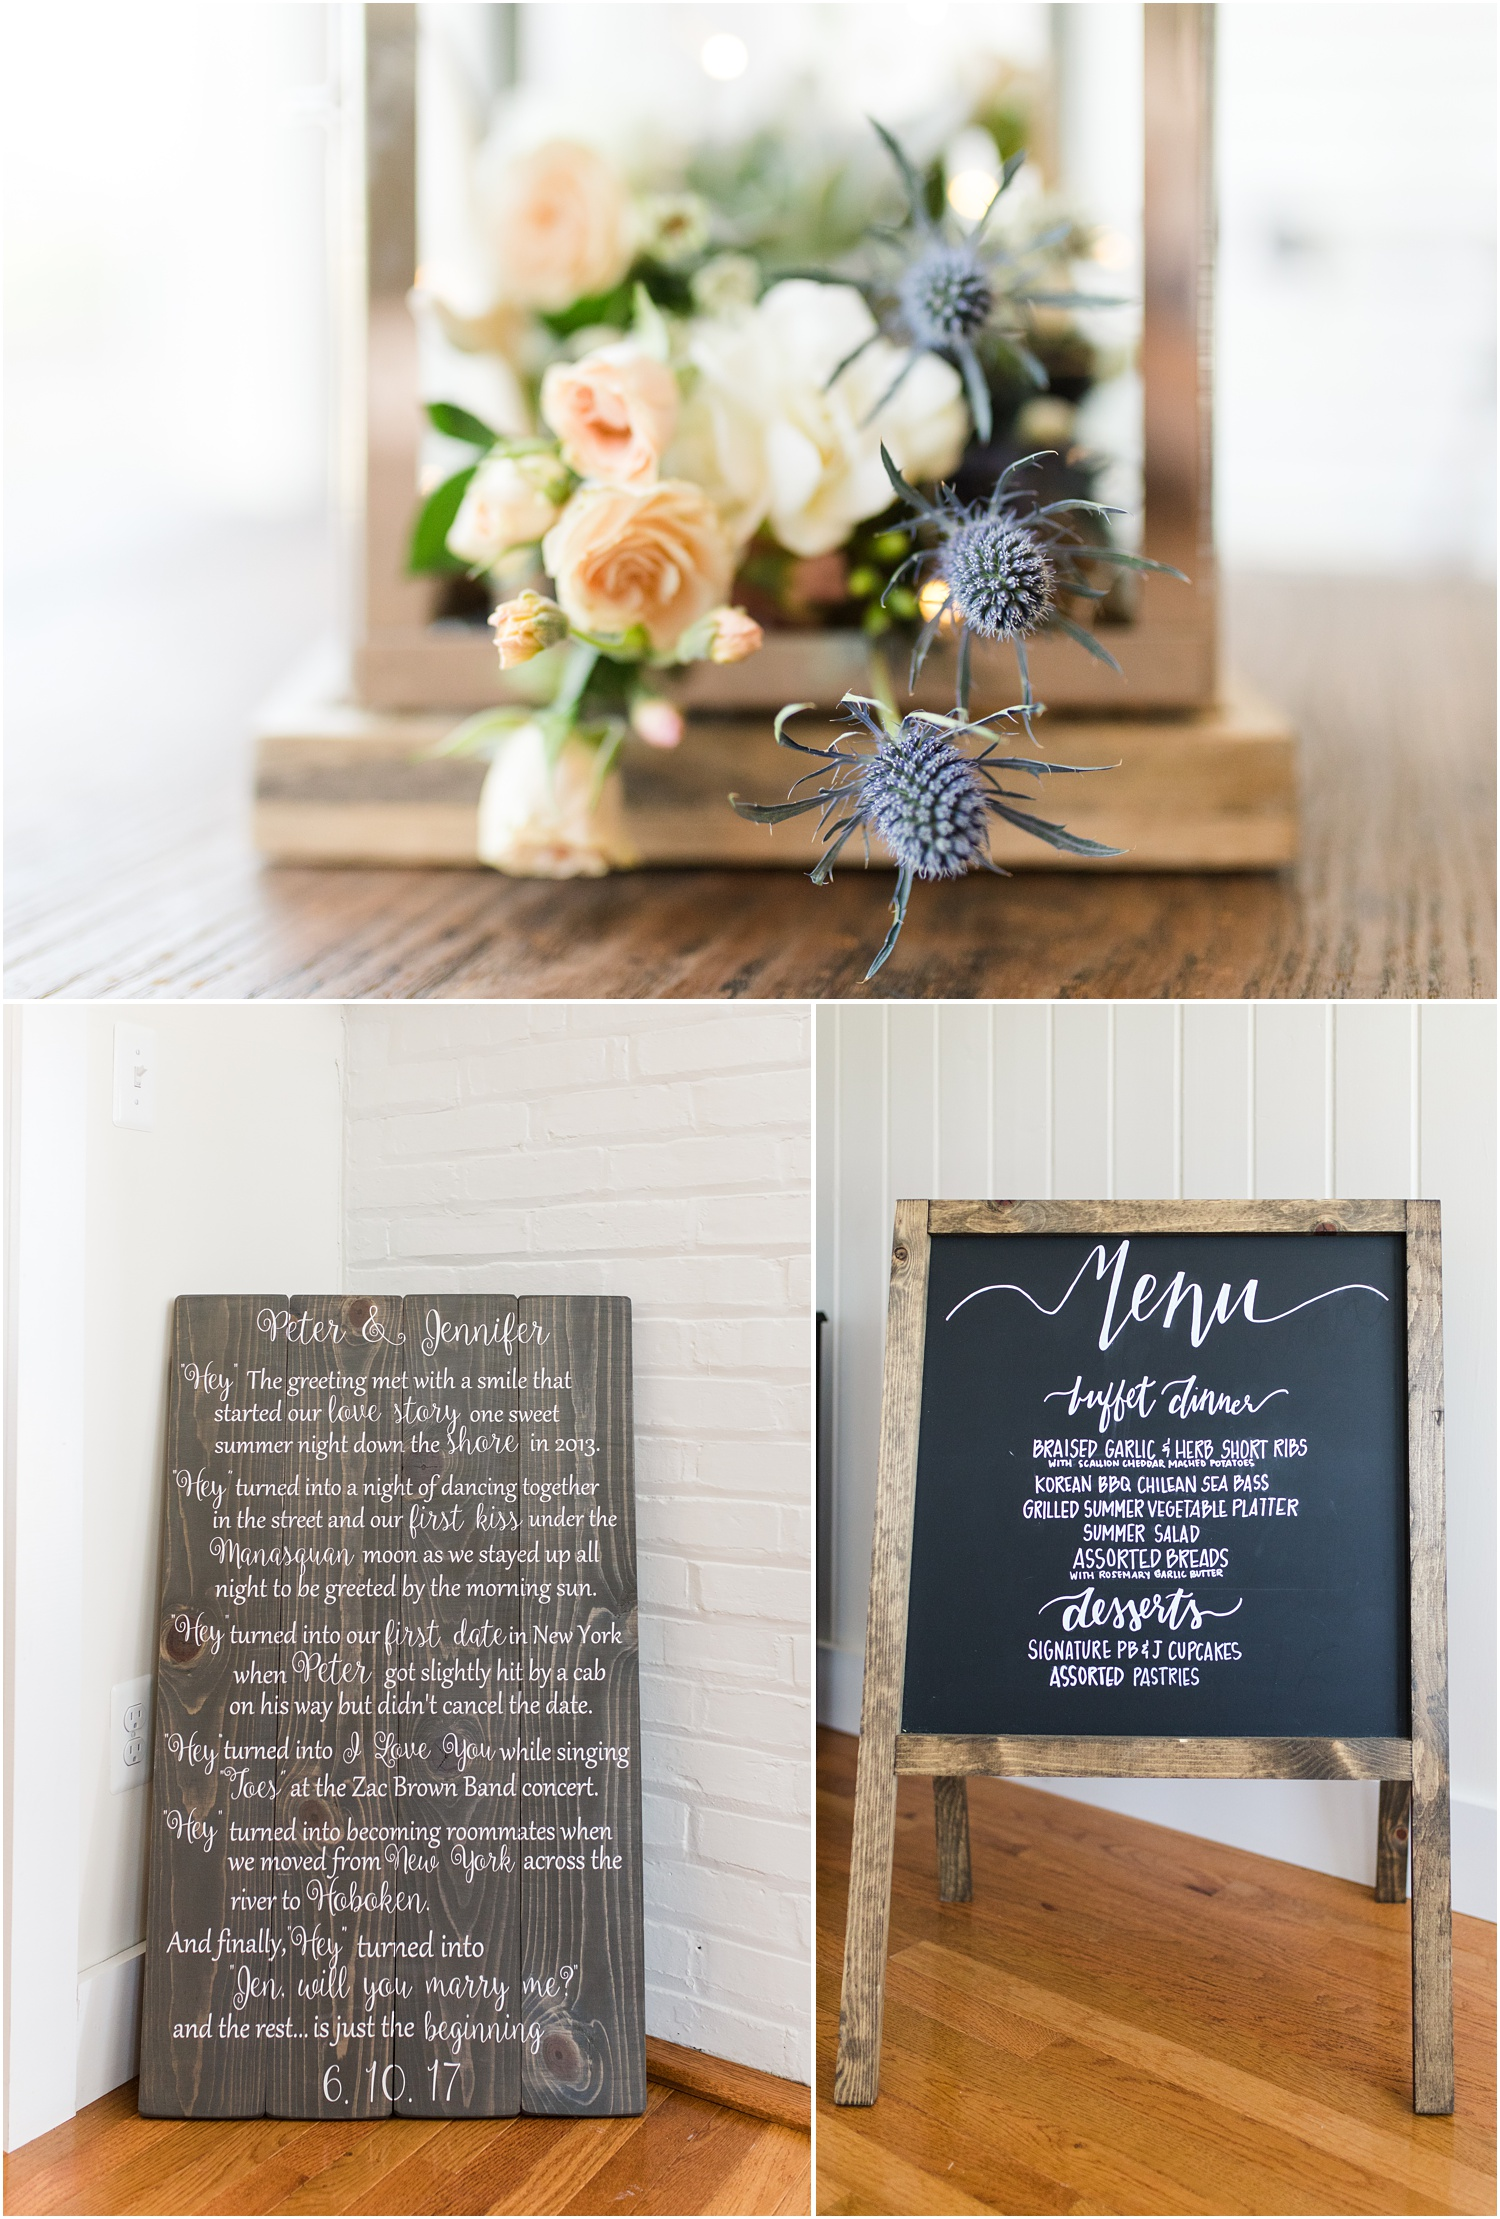 Lantern filled with thistle, wooden wedding decor with calligraphy  for beach wedding in Mantoloking, NJ.